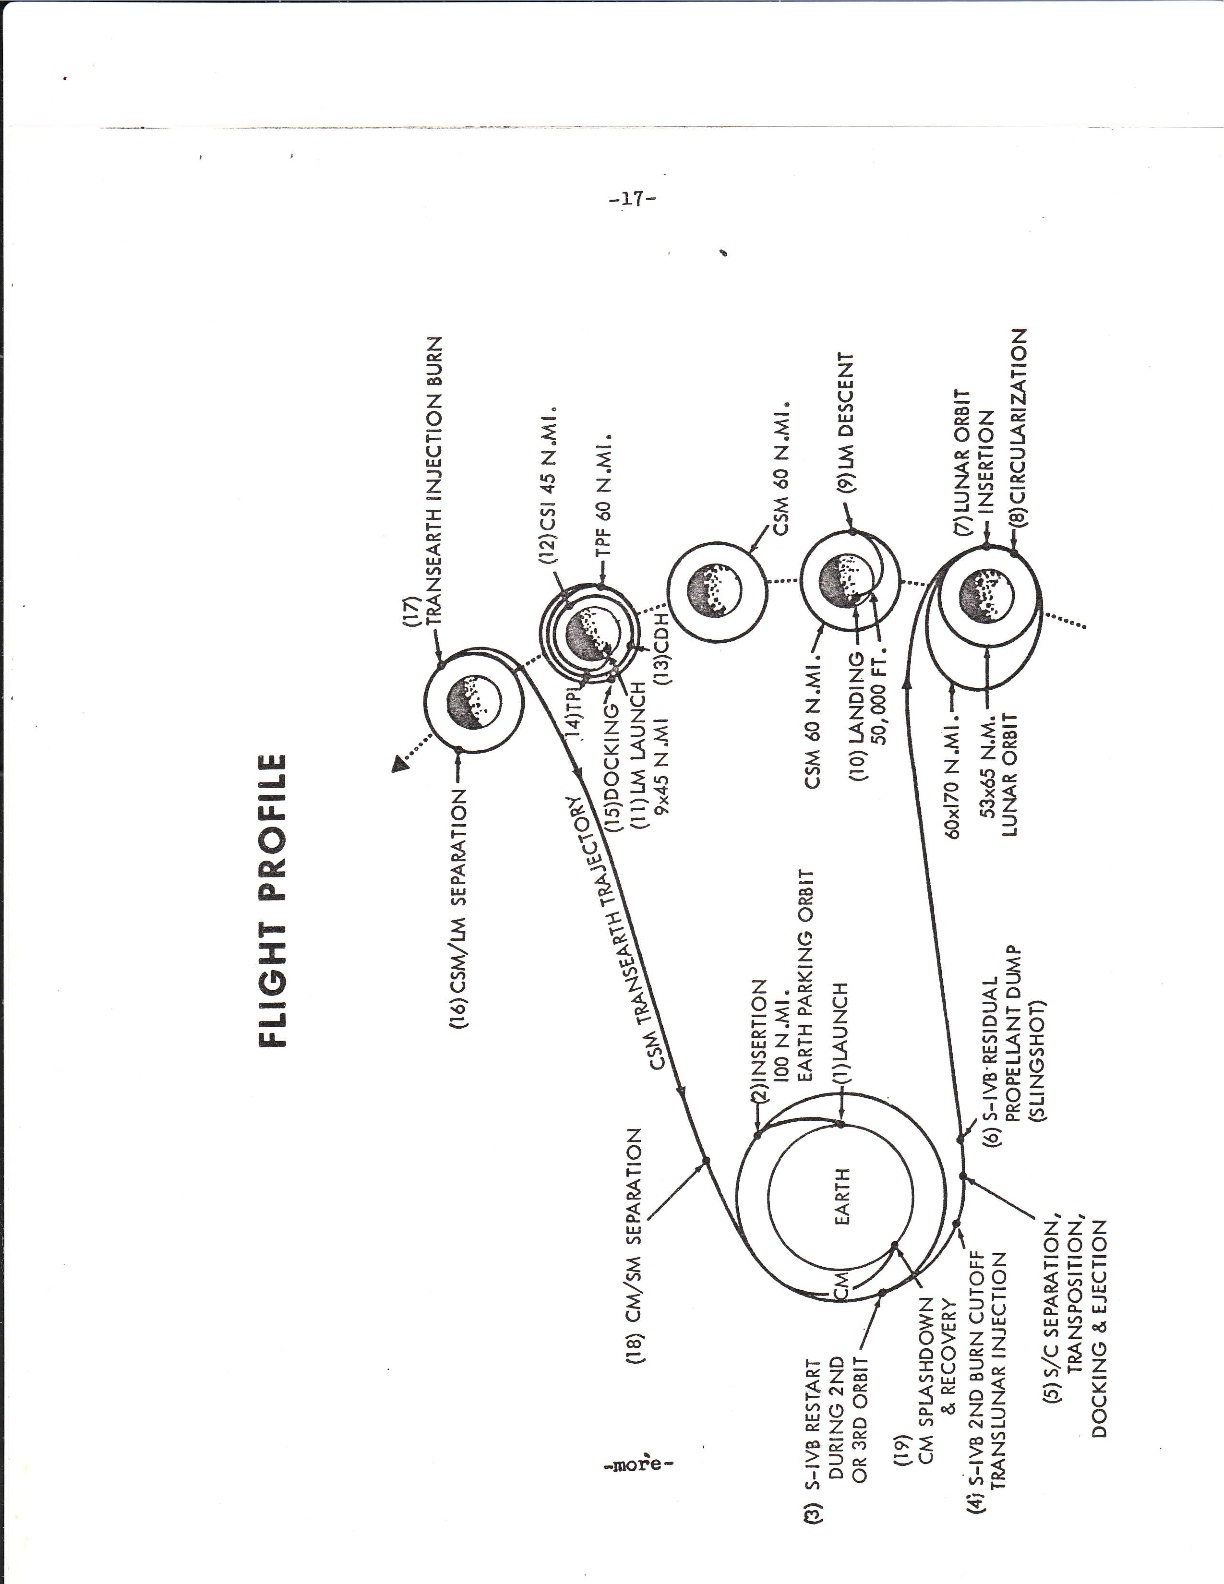 Apollo 11 Flight Path Diagram